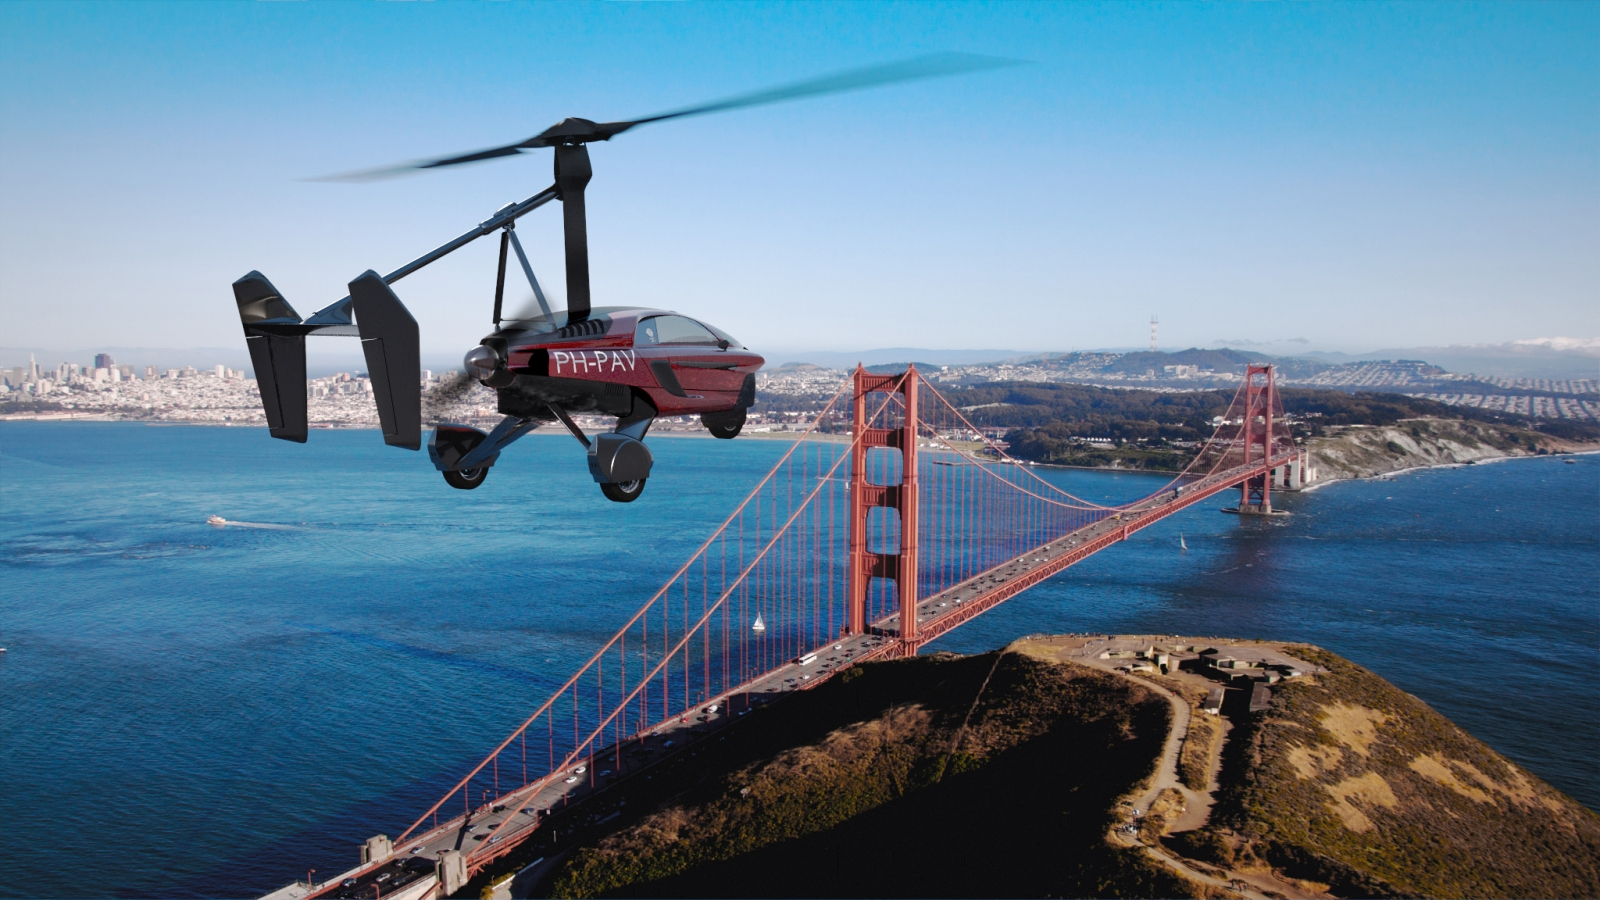 4 seater helicopter price with Lift Off Worlds First  Mercial Flying Car Goes Sale 255000 Price Tag 1606264 on XIpVe8RNe also 36525 likewise 0108 besides Lift Off Worlds First  mercial Flying Car Goes Sale 255000 Price Tag 1606264 together with Lamborghini Aventador Limo.